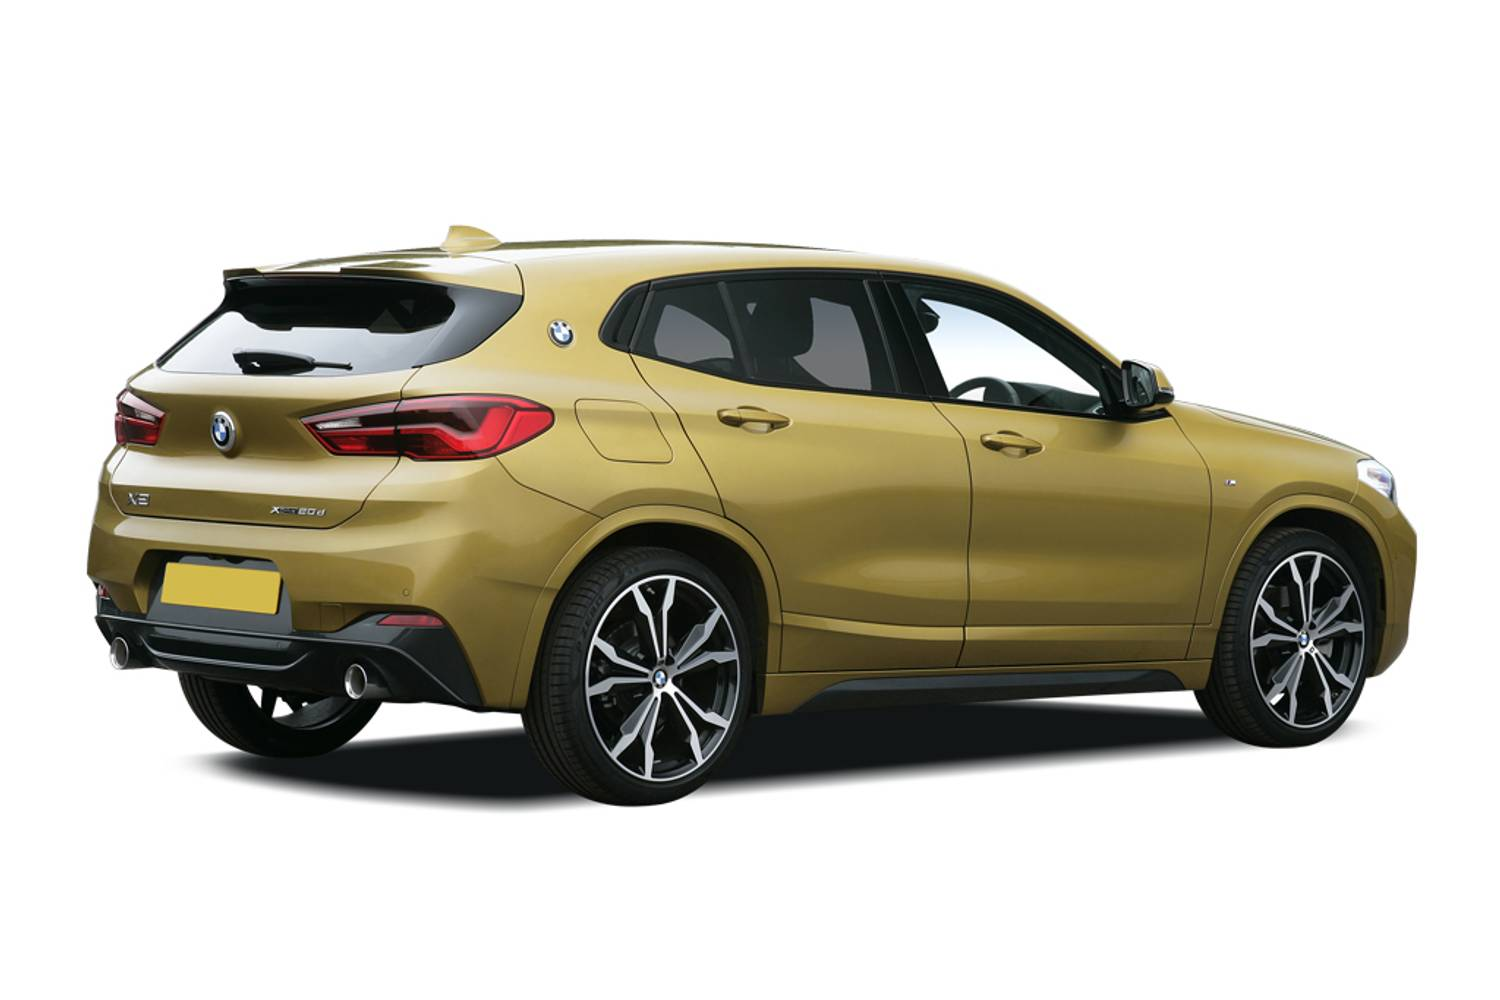 BMW X2 Hatchback 5dr Rear Three Quarter